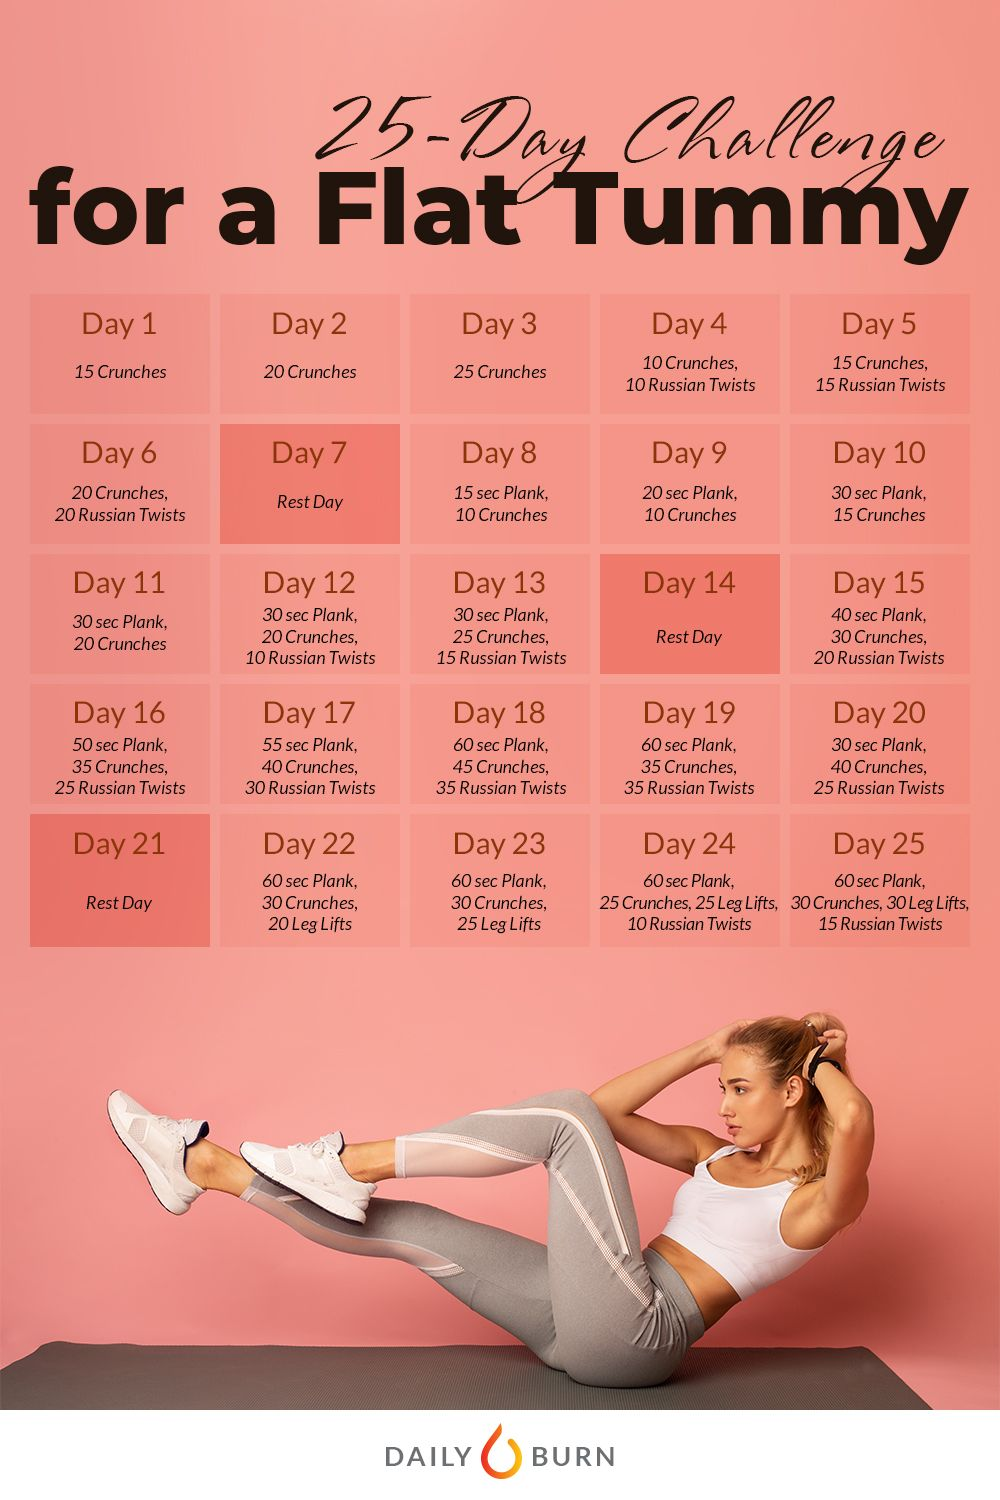 25 Day Challenge for a Flat Tummy